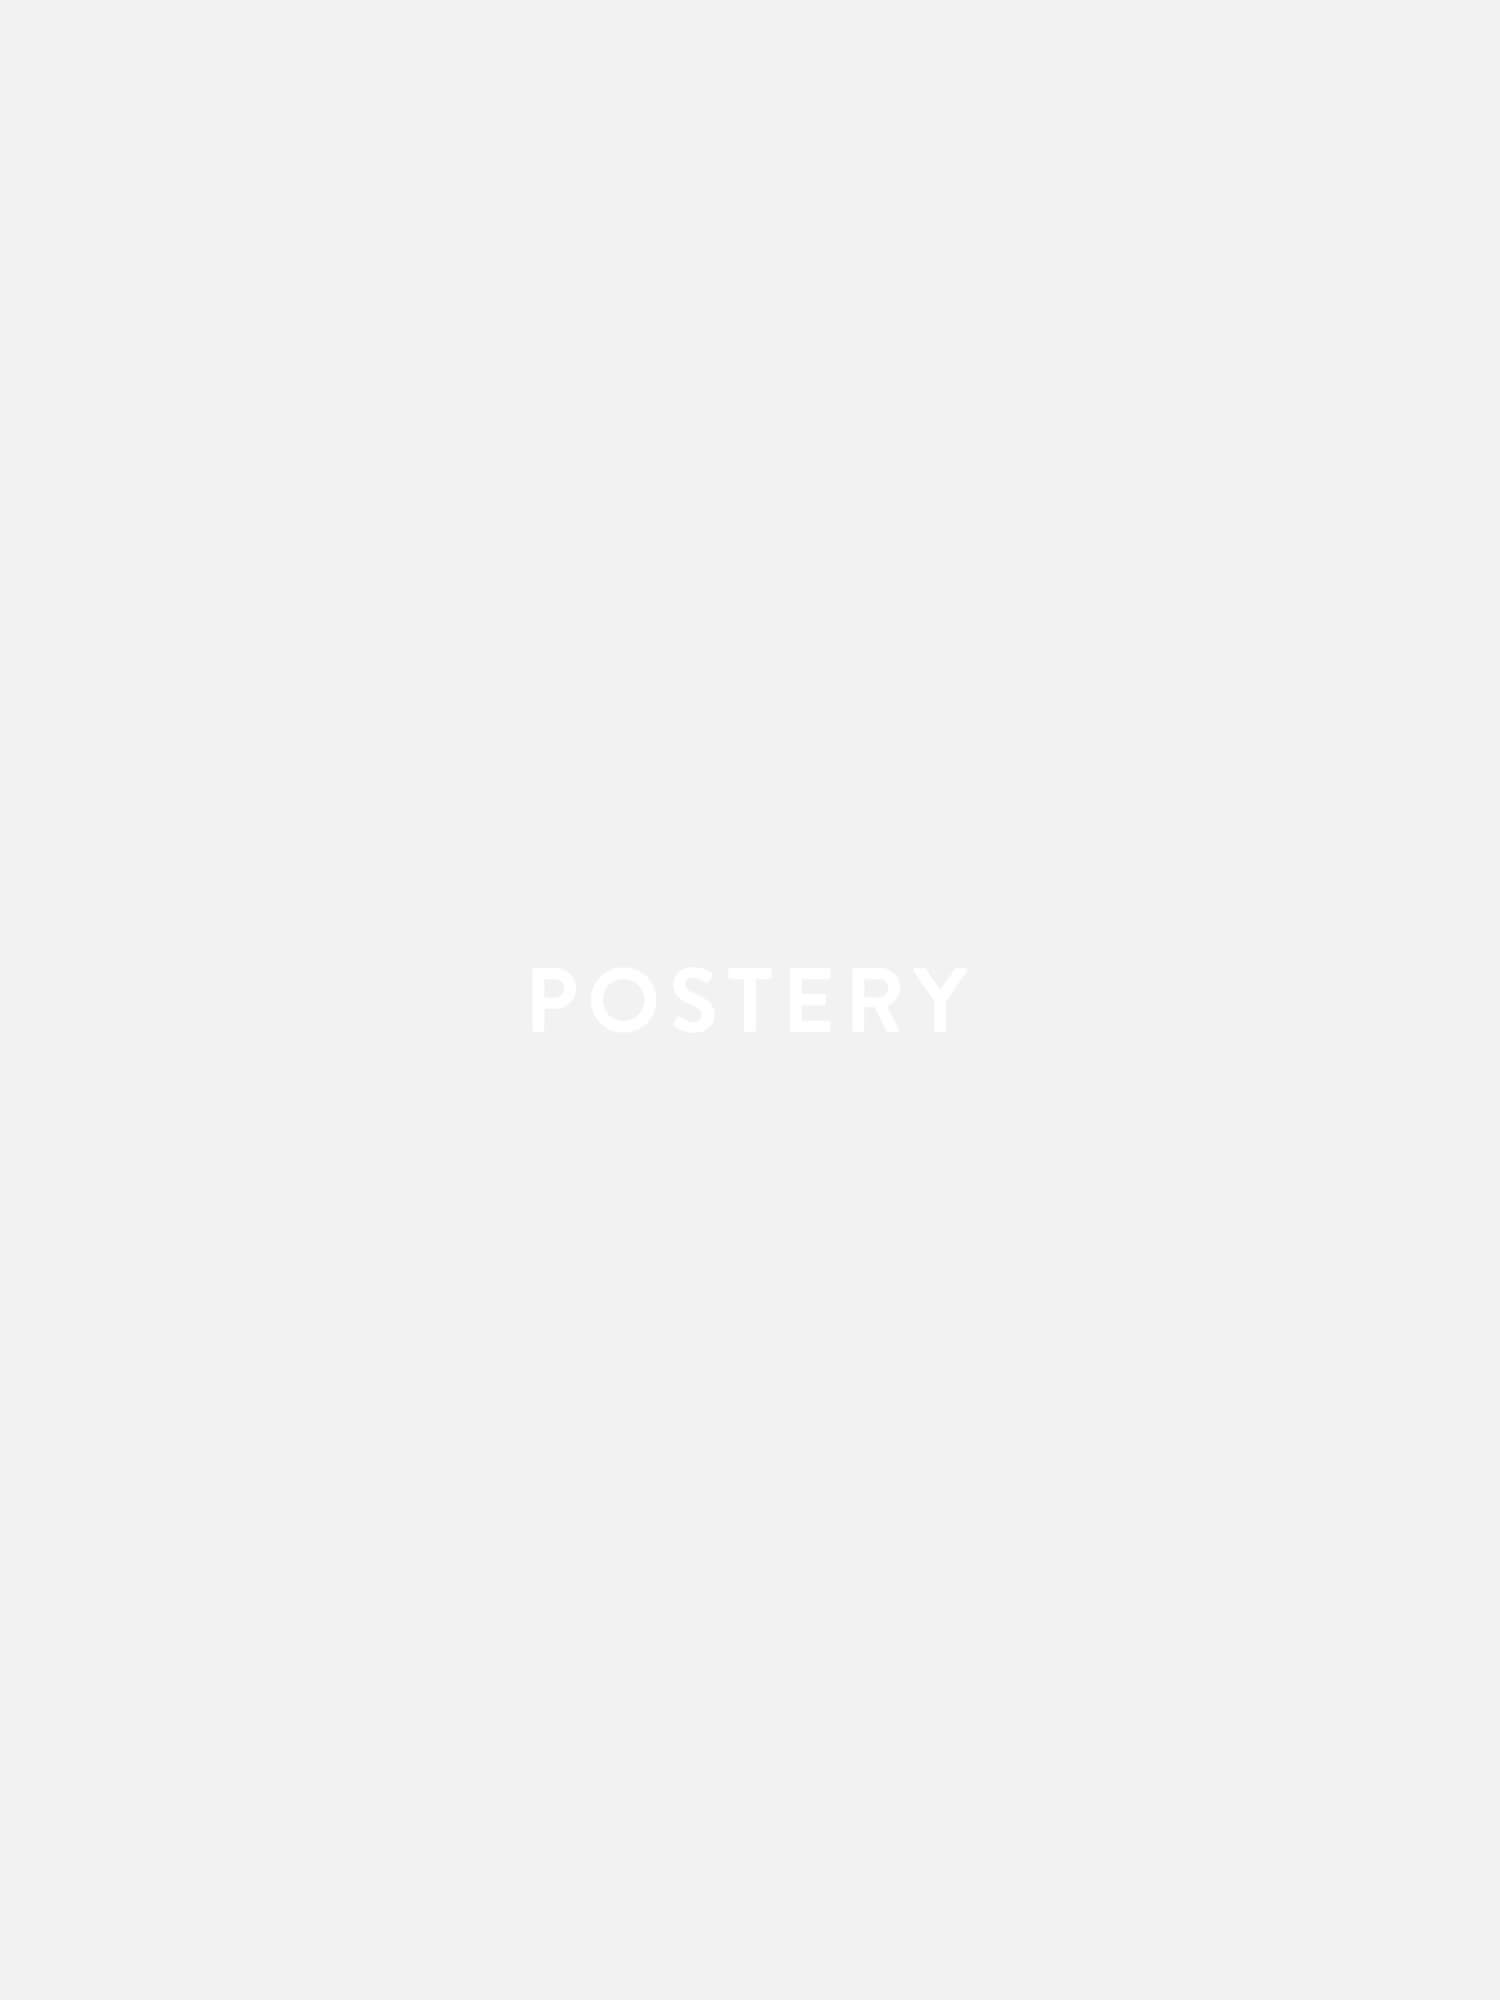 Beach Flamingos Poster